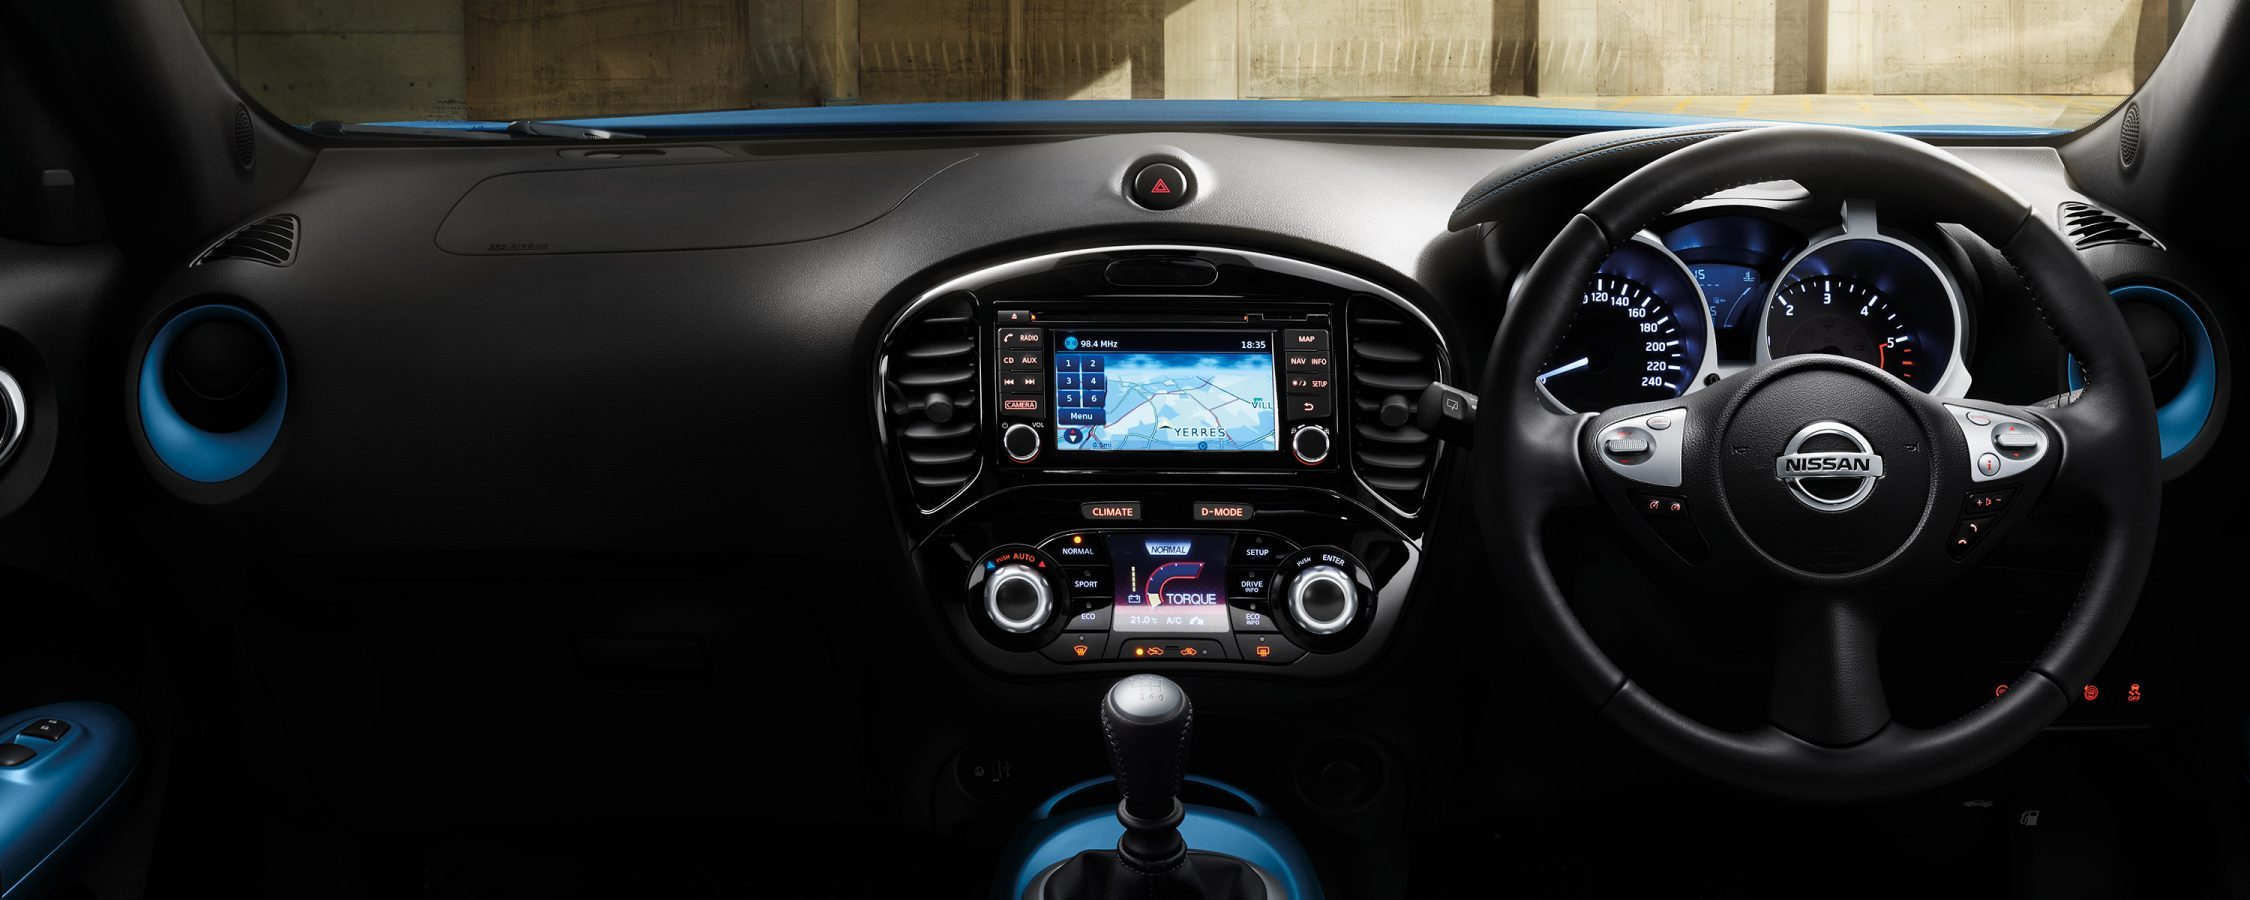 2018 Nissan JUKE interior showing dashboard, steering wheel and central console